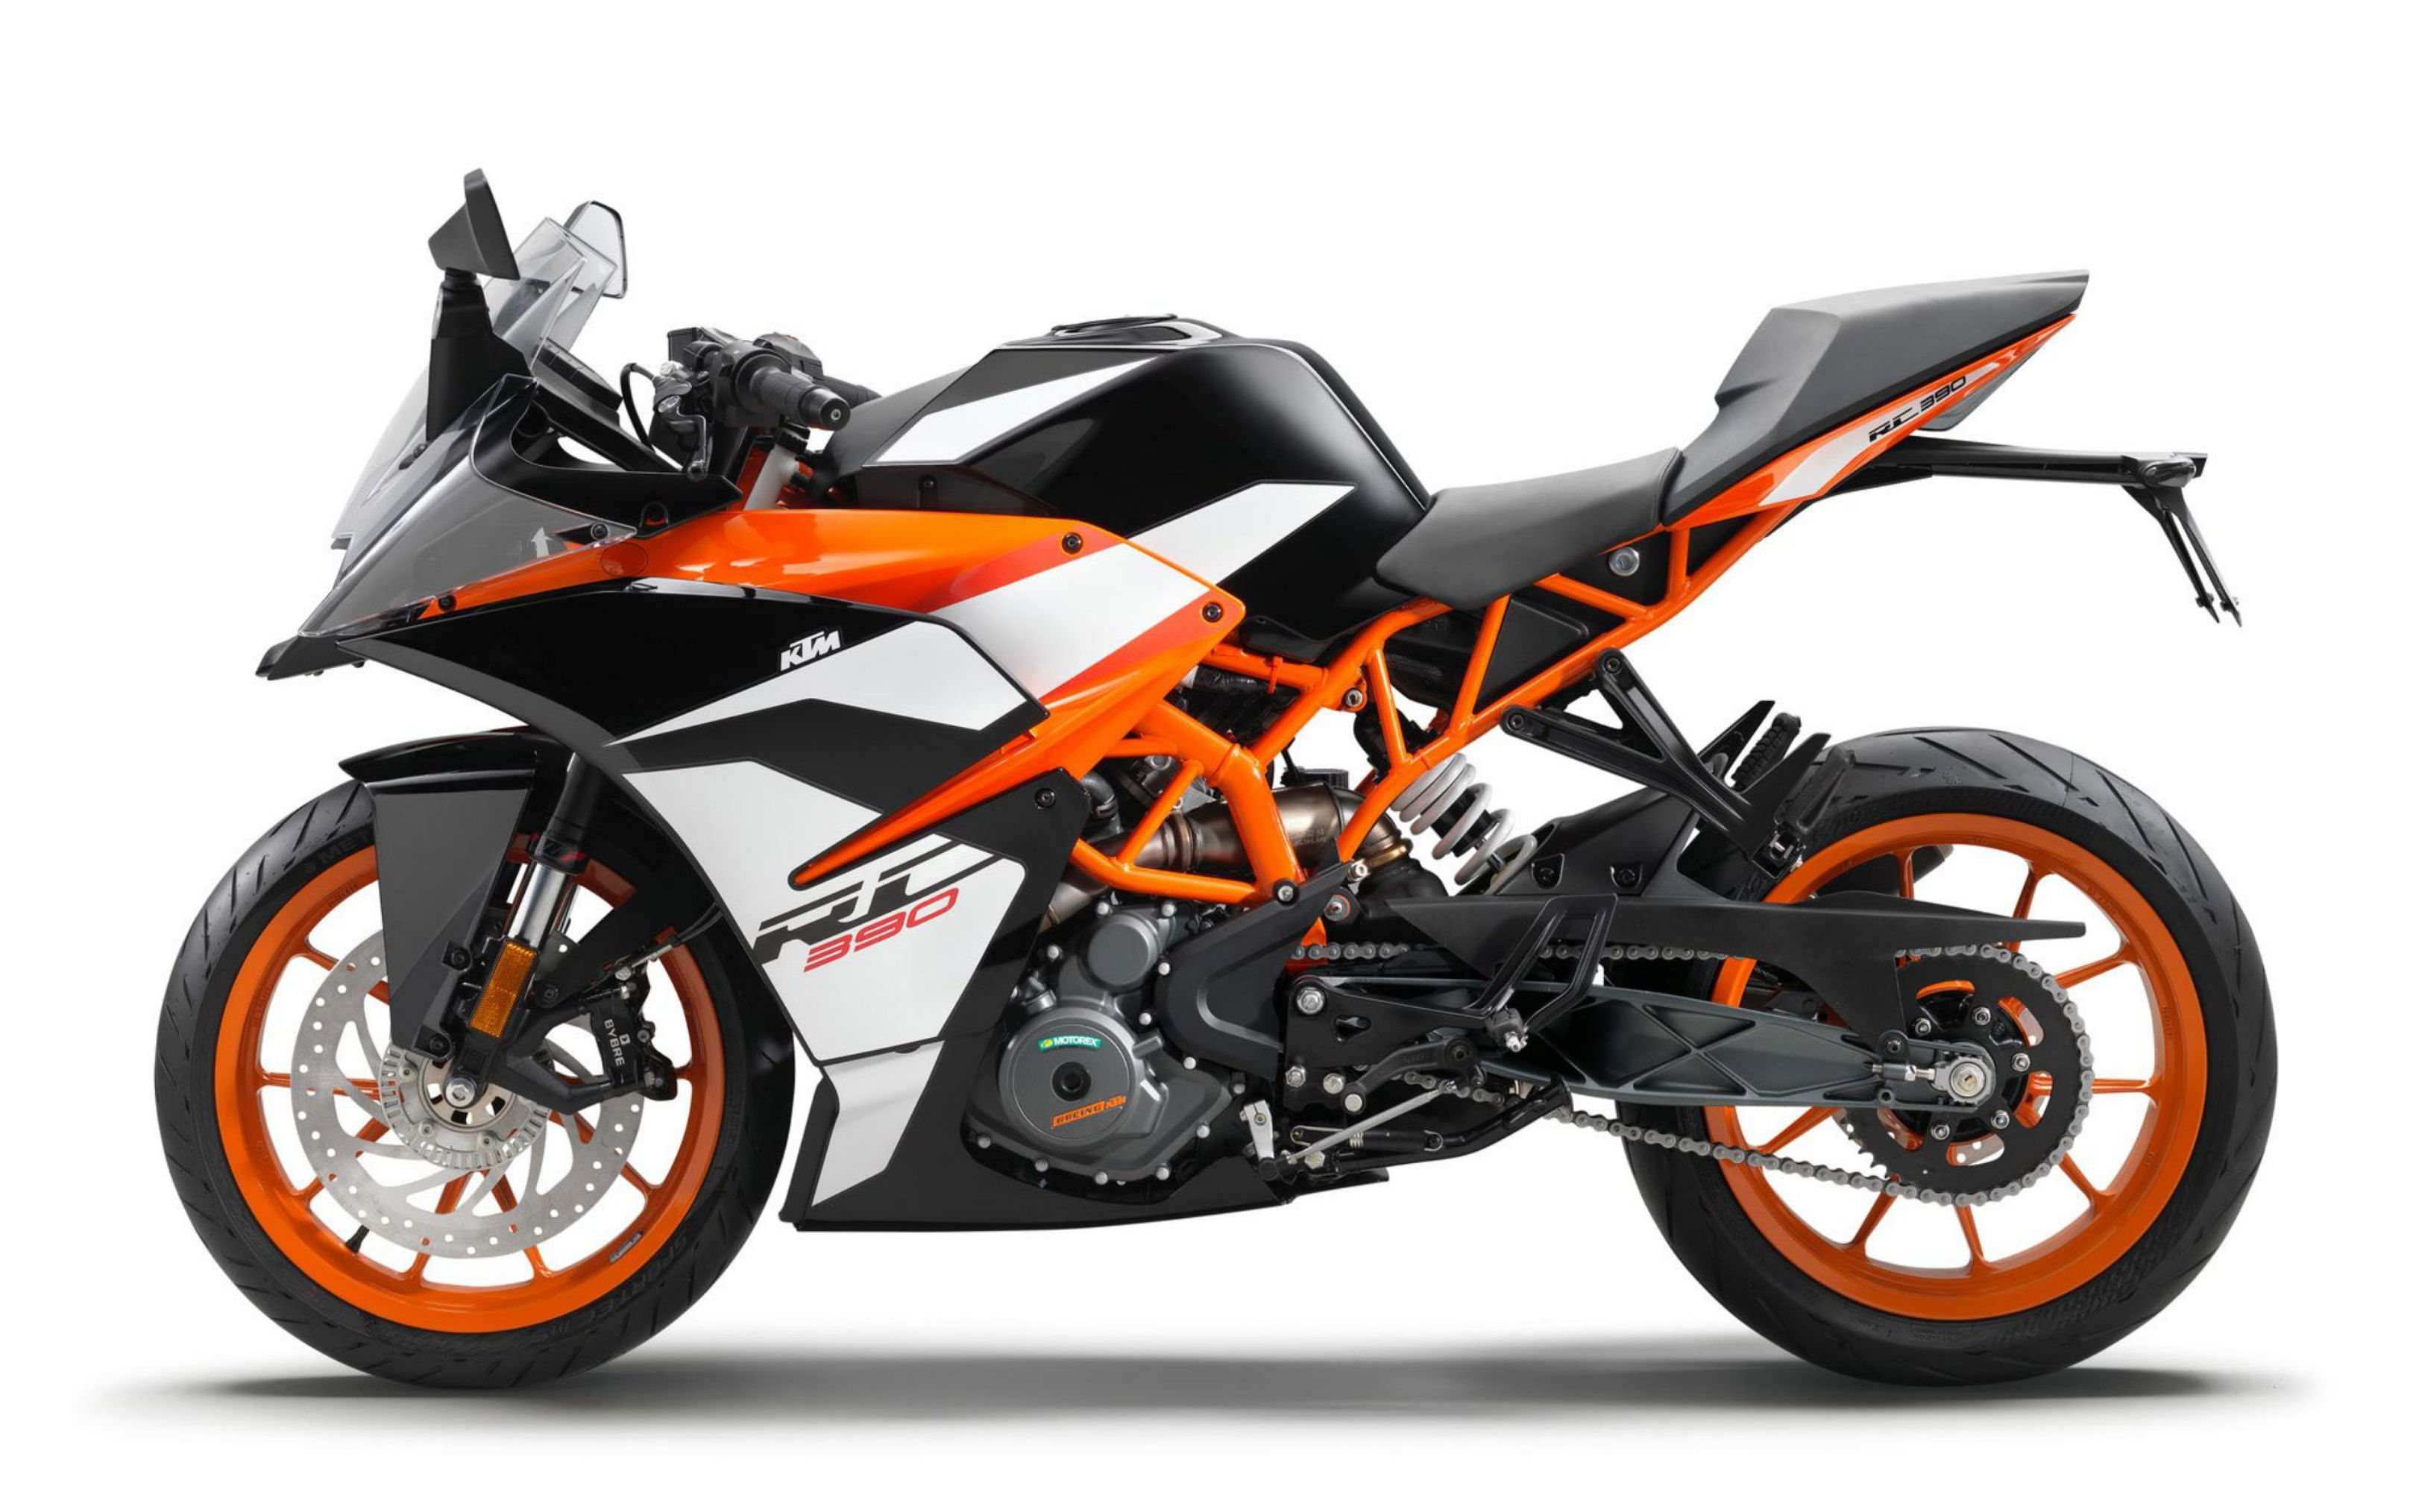 Download 2017 KTM RC390 C HD Motorcycle Wallpaper with id 2102 ...